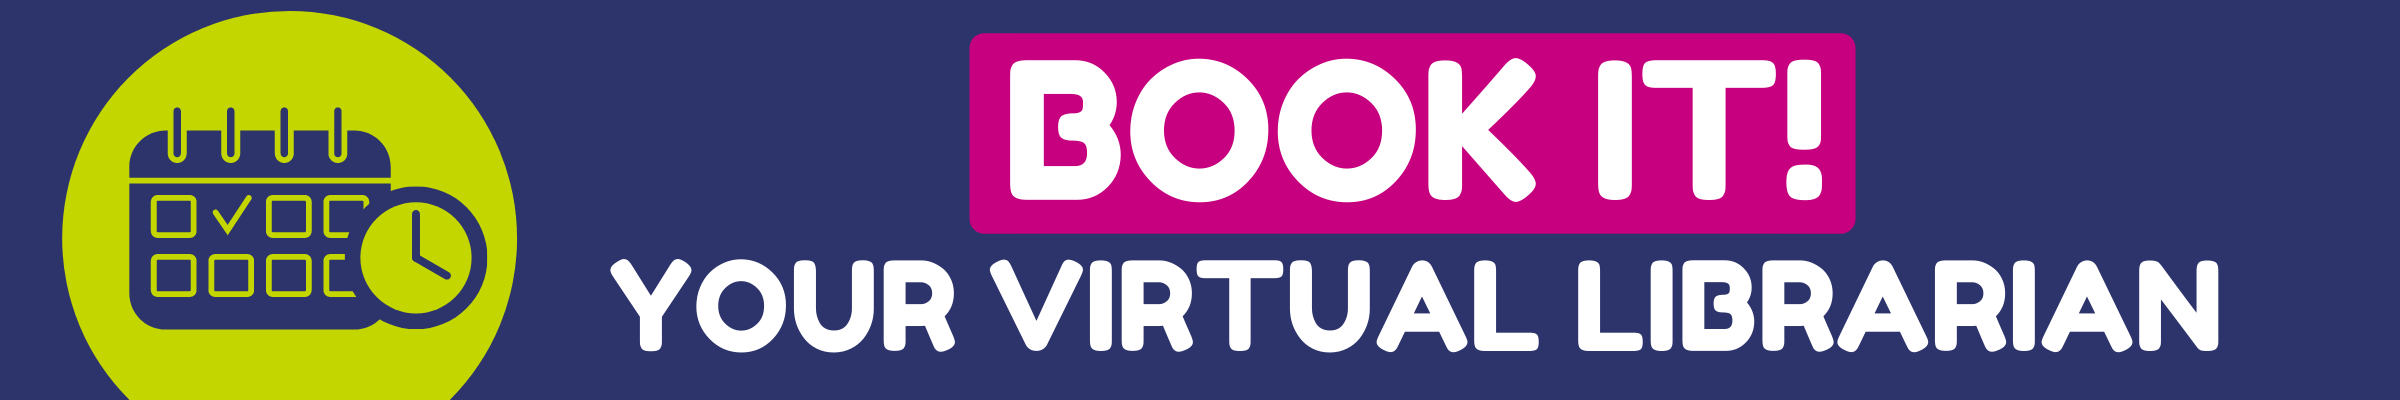 Book It Your Virtual Librarian